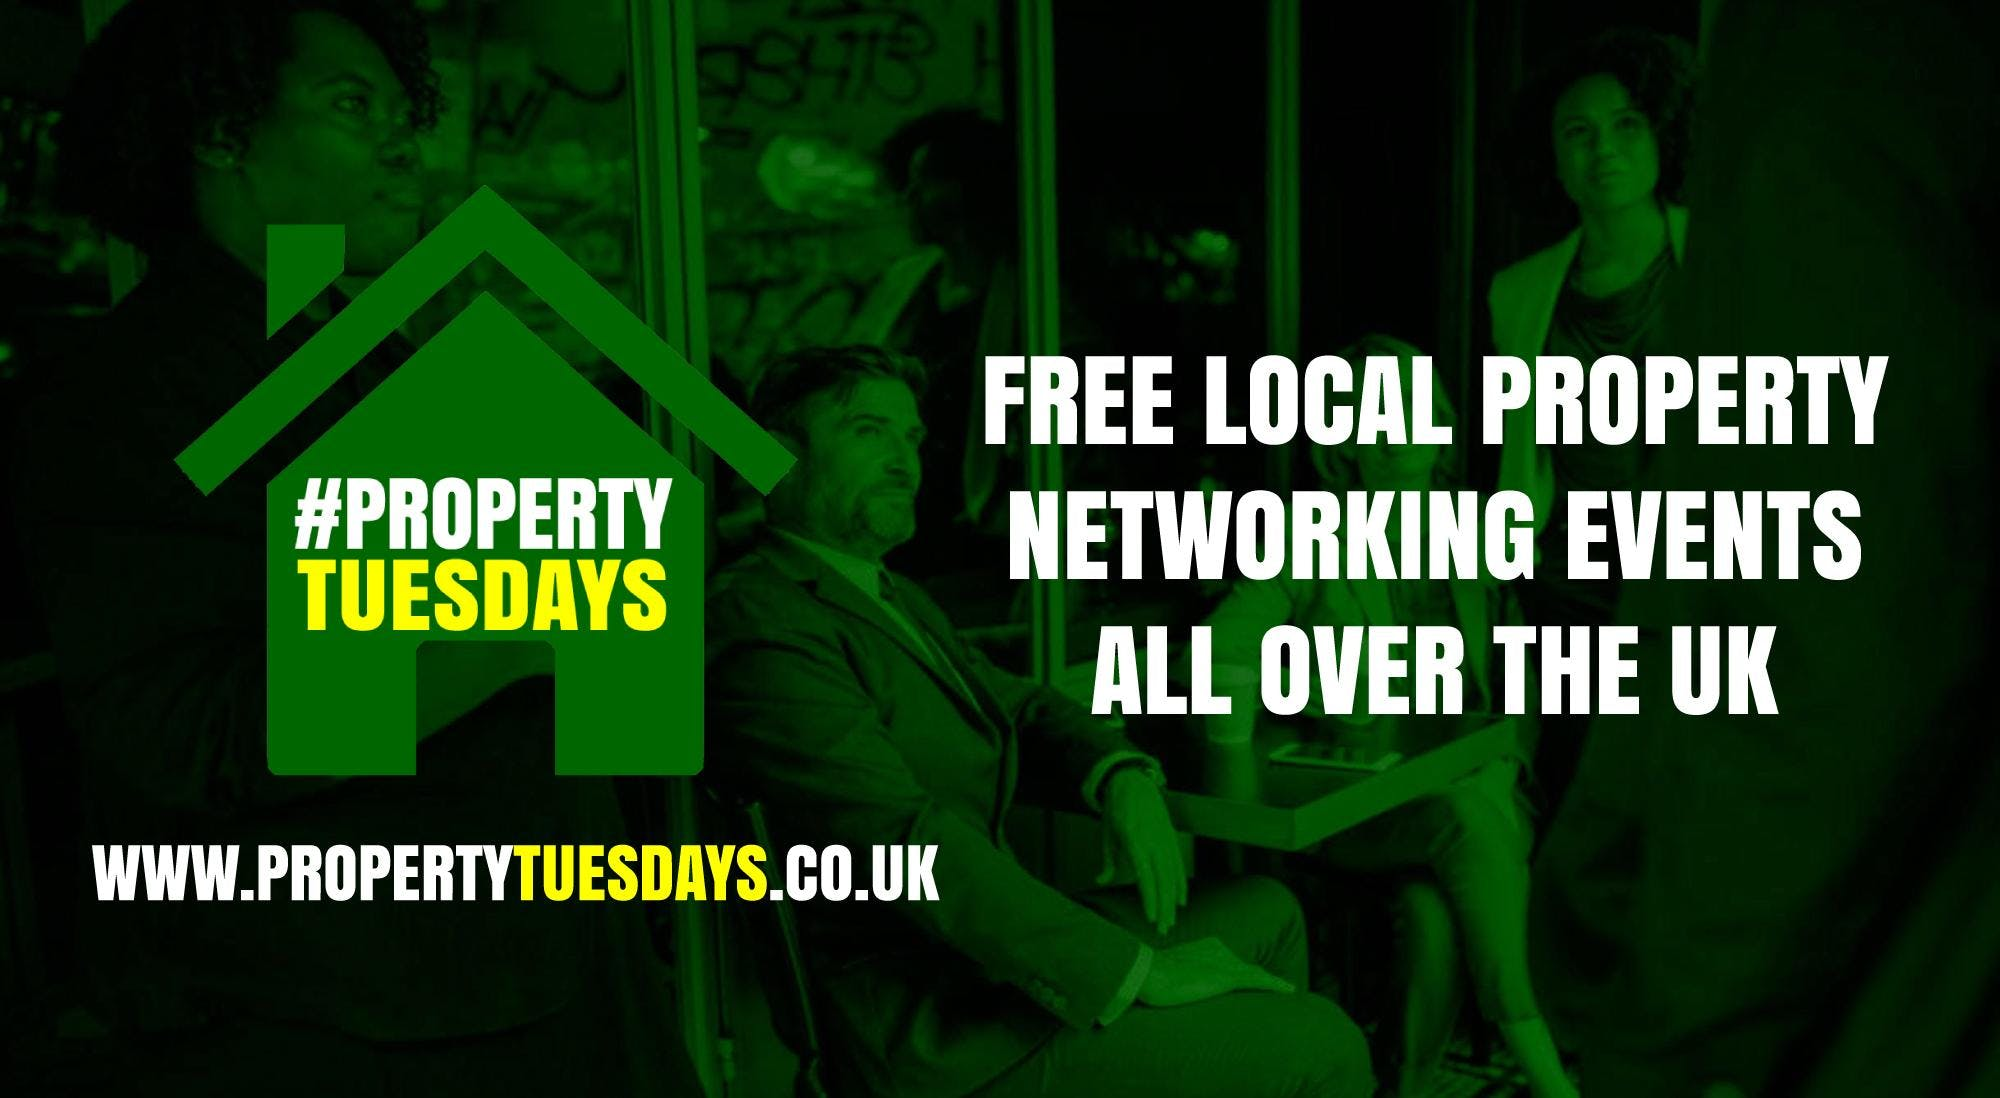 Property Tuesdays! Free property networking event in Moreton